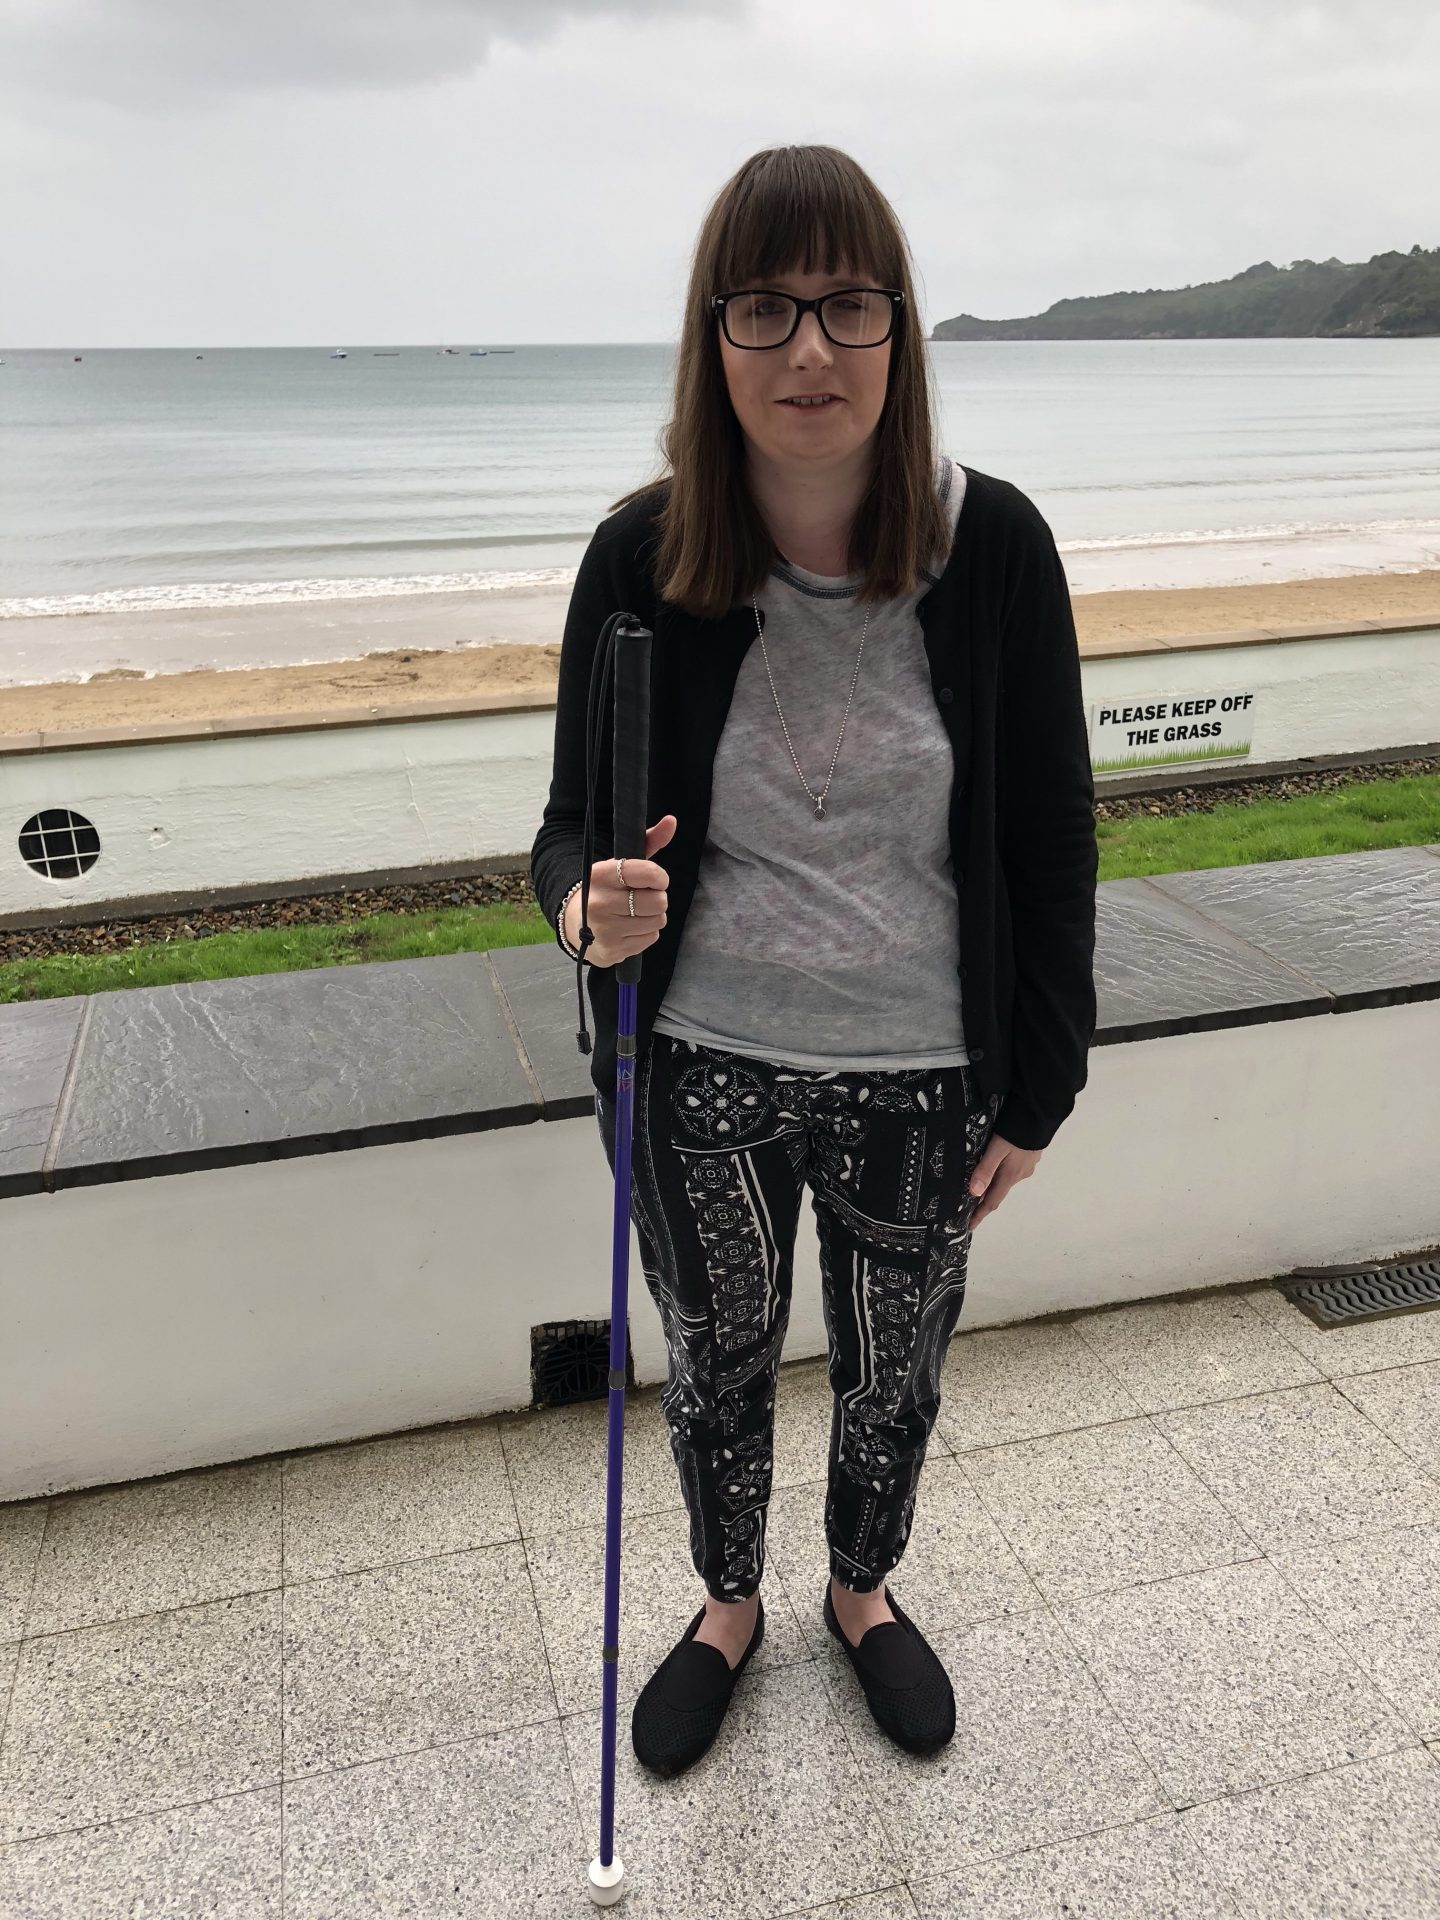 A photo of Holly holding a purple cane with the sea in the background